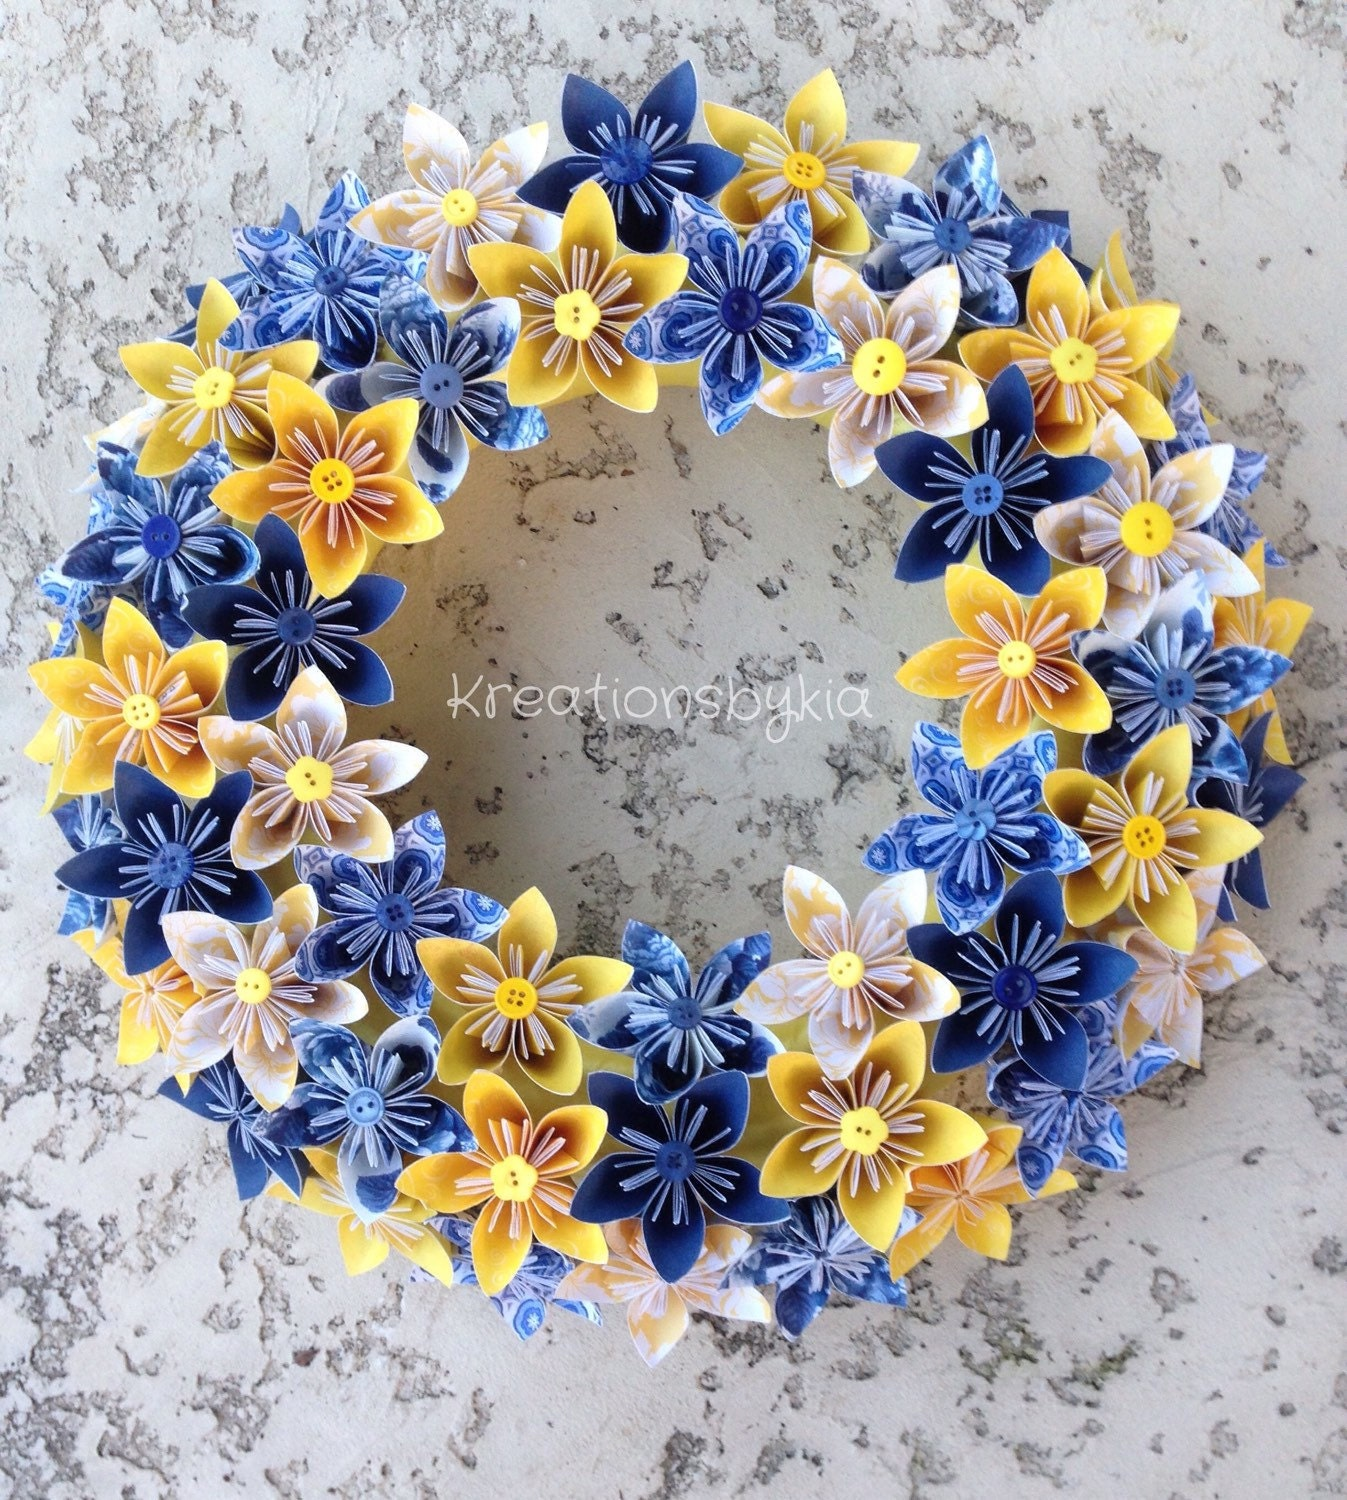 Christmas origami wreath - Origami Paper Flower Wreath Origami Paper Flowers Paper Wreath Origami Wreath